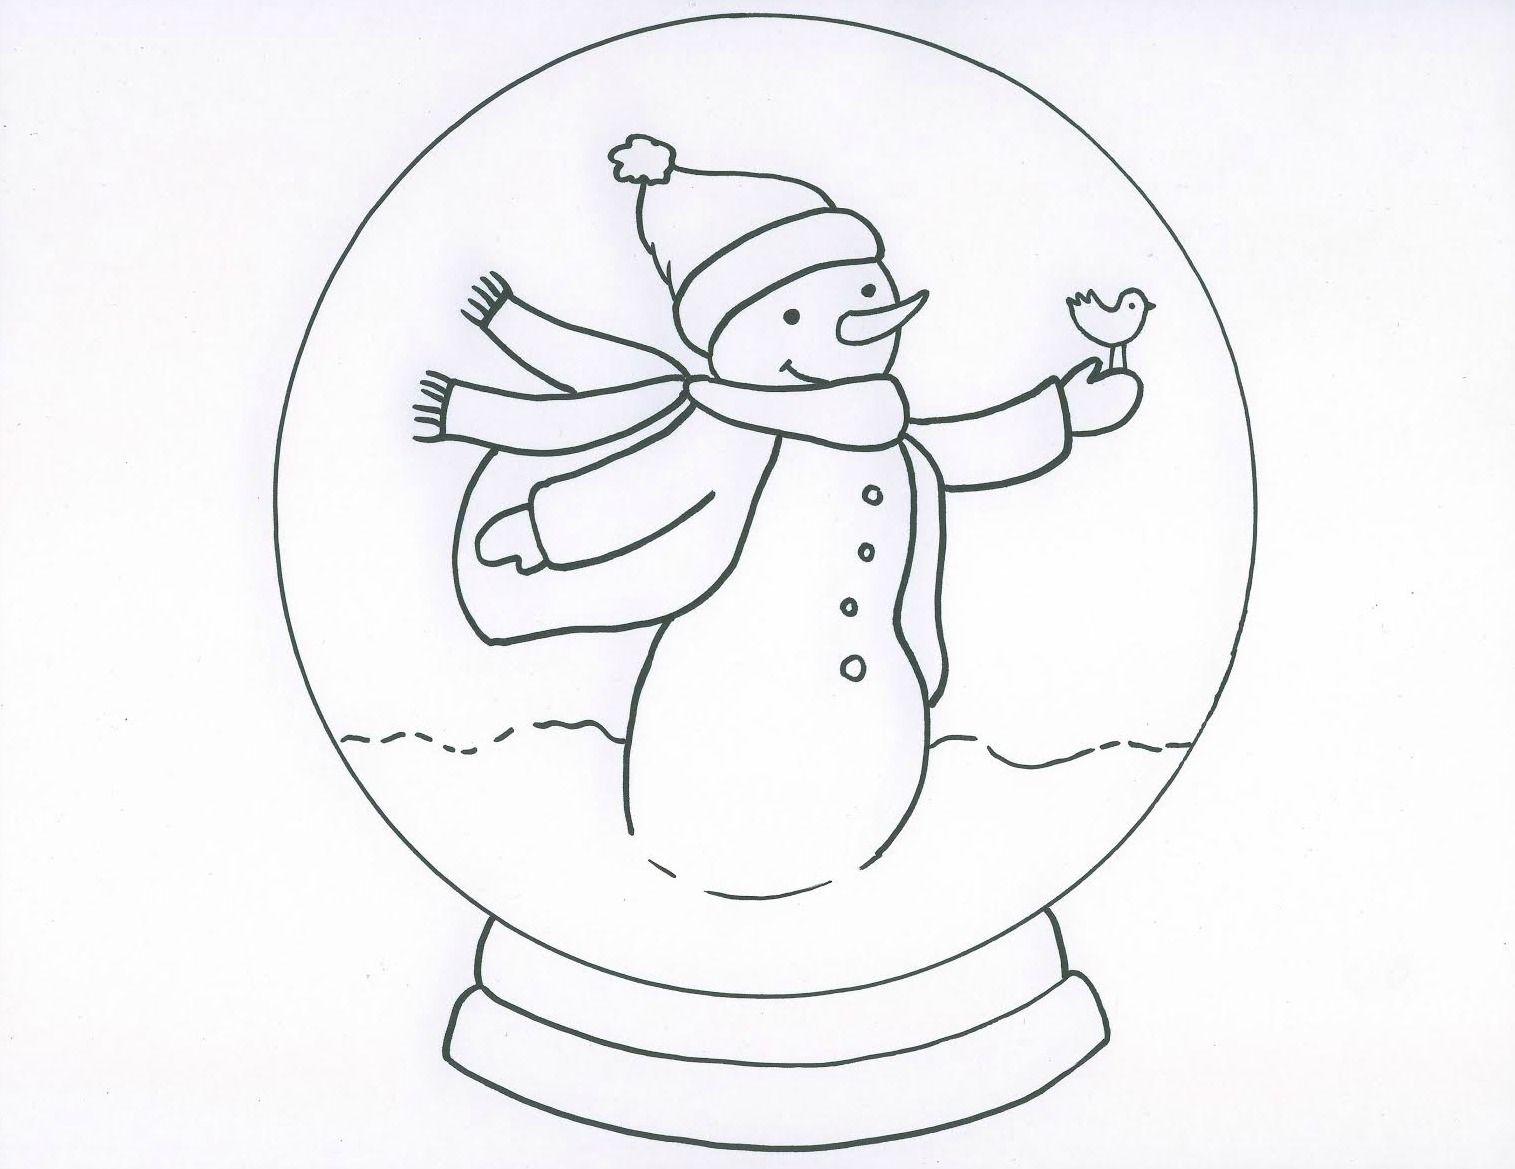 fox snow globe coloring pages - photo#12